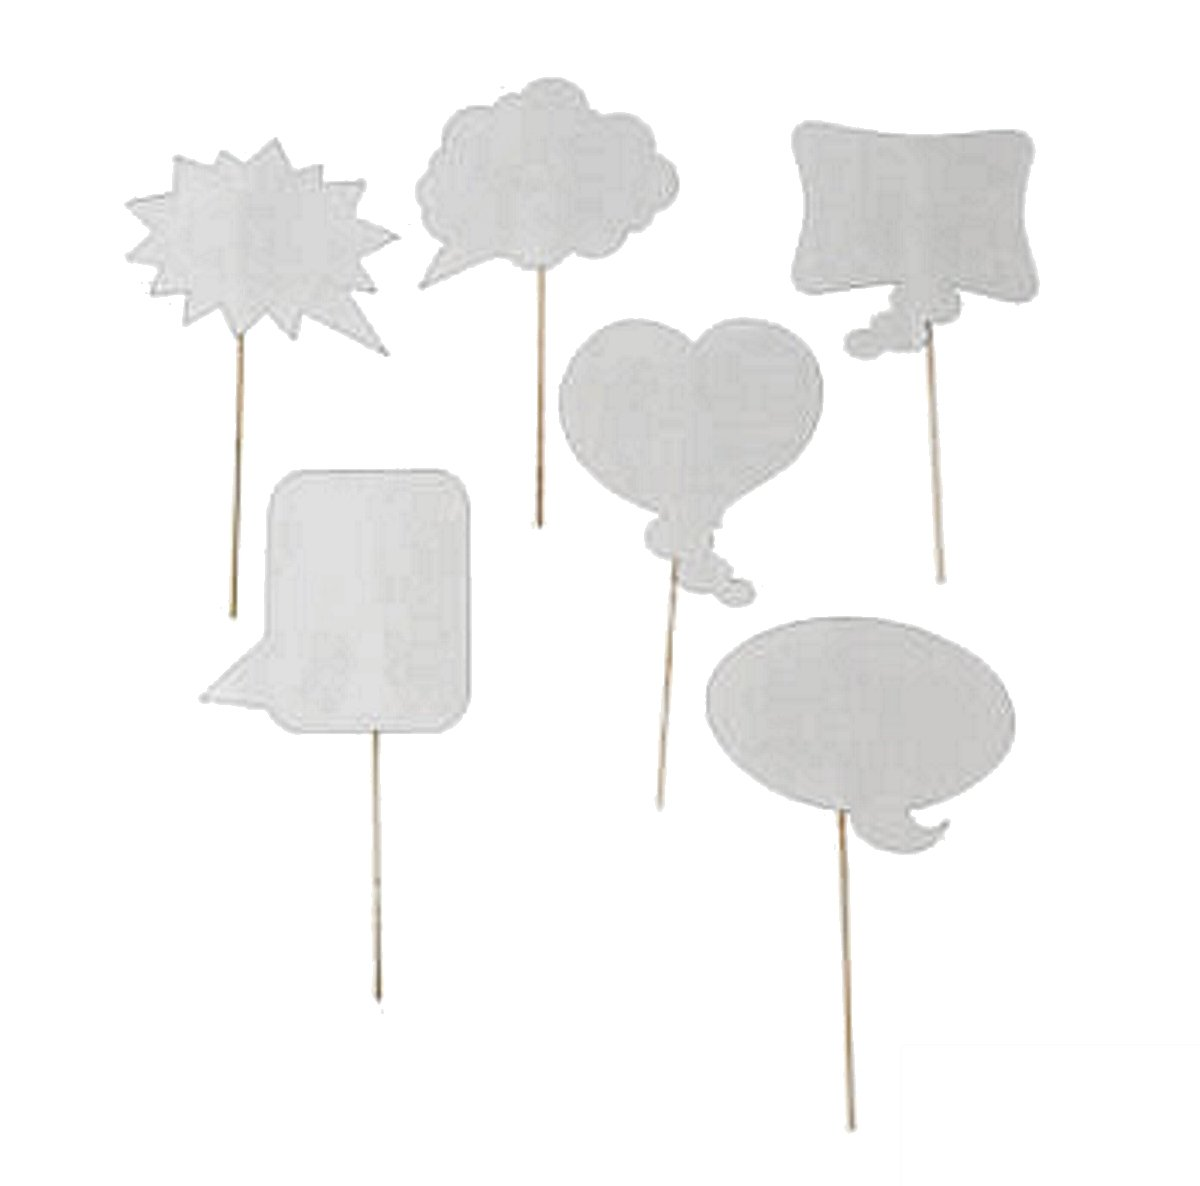 Wedding Photo Booth Props, Dry Erase Bubble Speech Photo Booth Props Attached to the stick, Wedding decorations, Birthday party photo props, 4E's Novelty® by 4E's Novelty (Image #2)